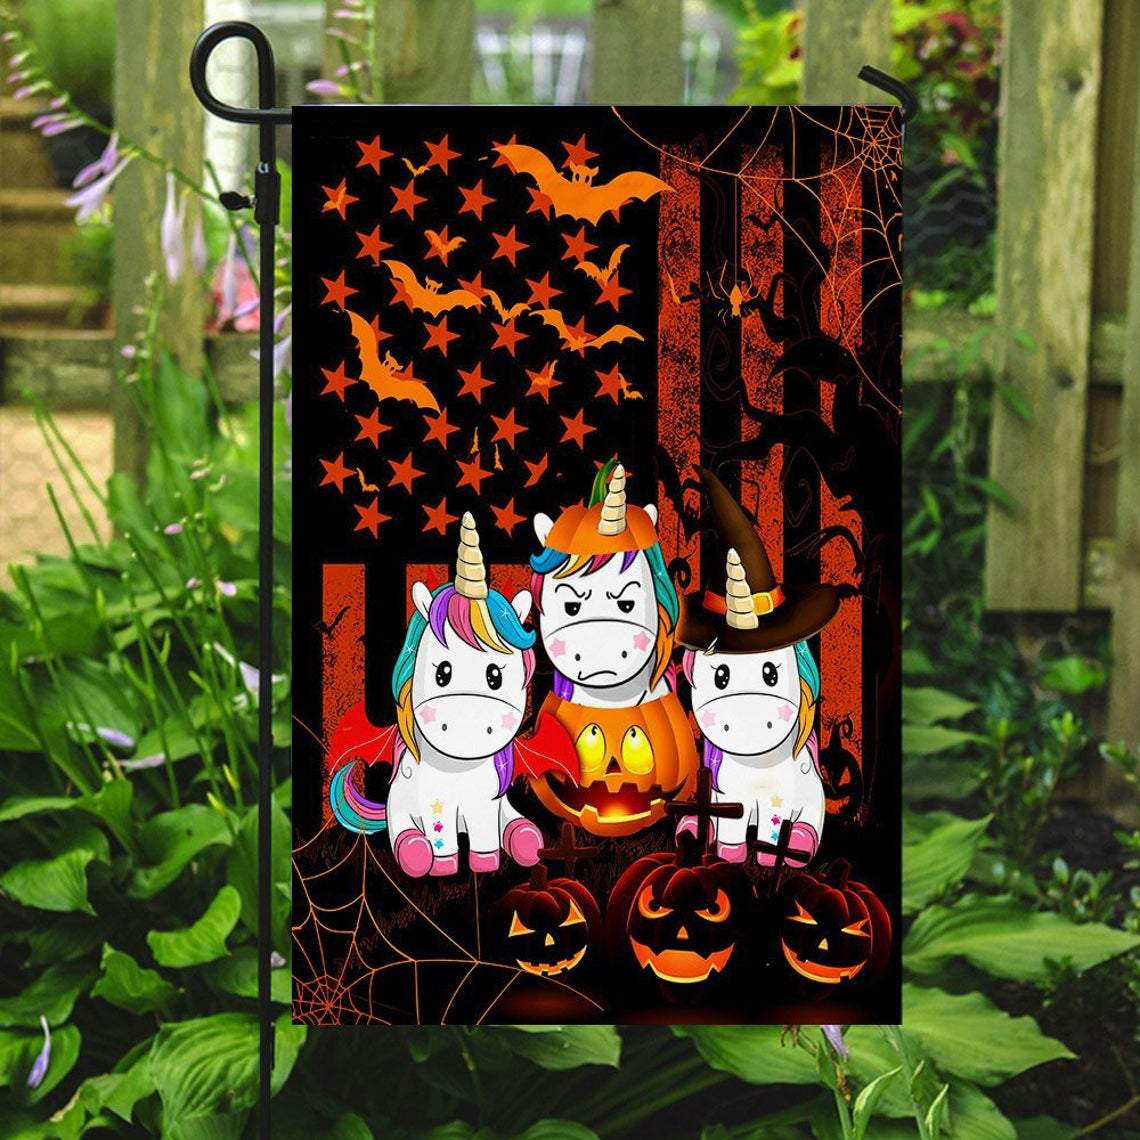 The holiday is intended to remember the dead saints and other souls; Halloween Unicorn Witch American Us Flag Garden Happy Halloween Day Decor Seasonal Outdoor Flag New House Gift Kitty Melody